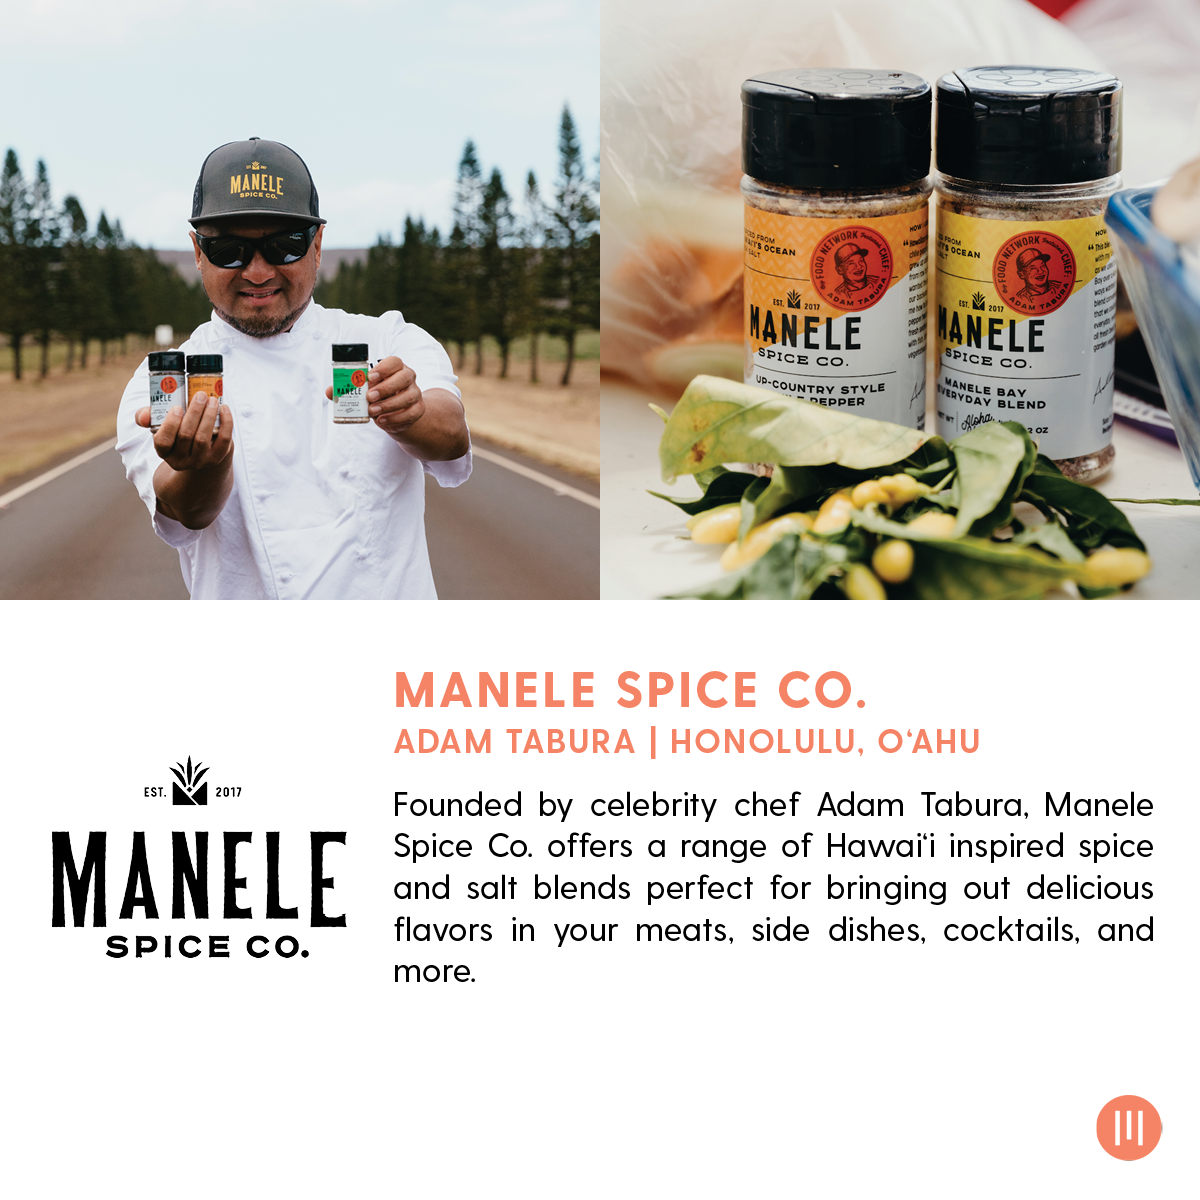 Manele Spice Co. Spices